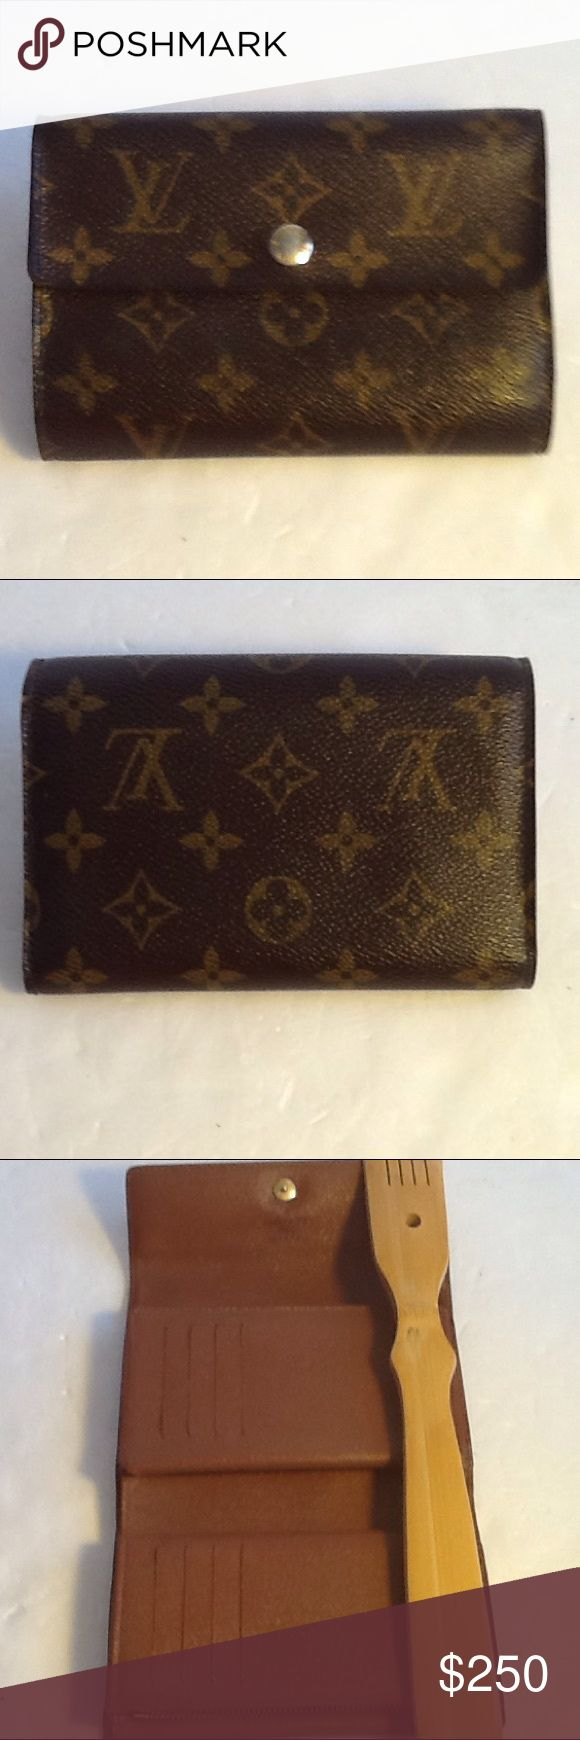 Authentic Louis Vuitton Bifold Multi Pocket Wallet Leather and canvas showed light wearing. The wallet was bade in France. With a date code SP 0087. Over all the wallet us in s good condition. Louis Vuitton Accessories